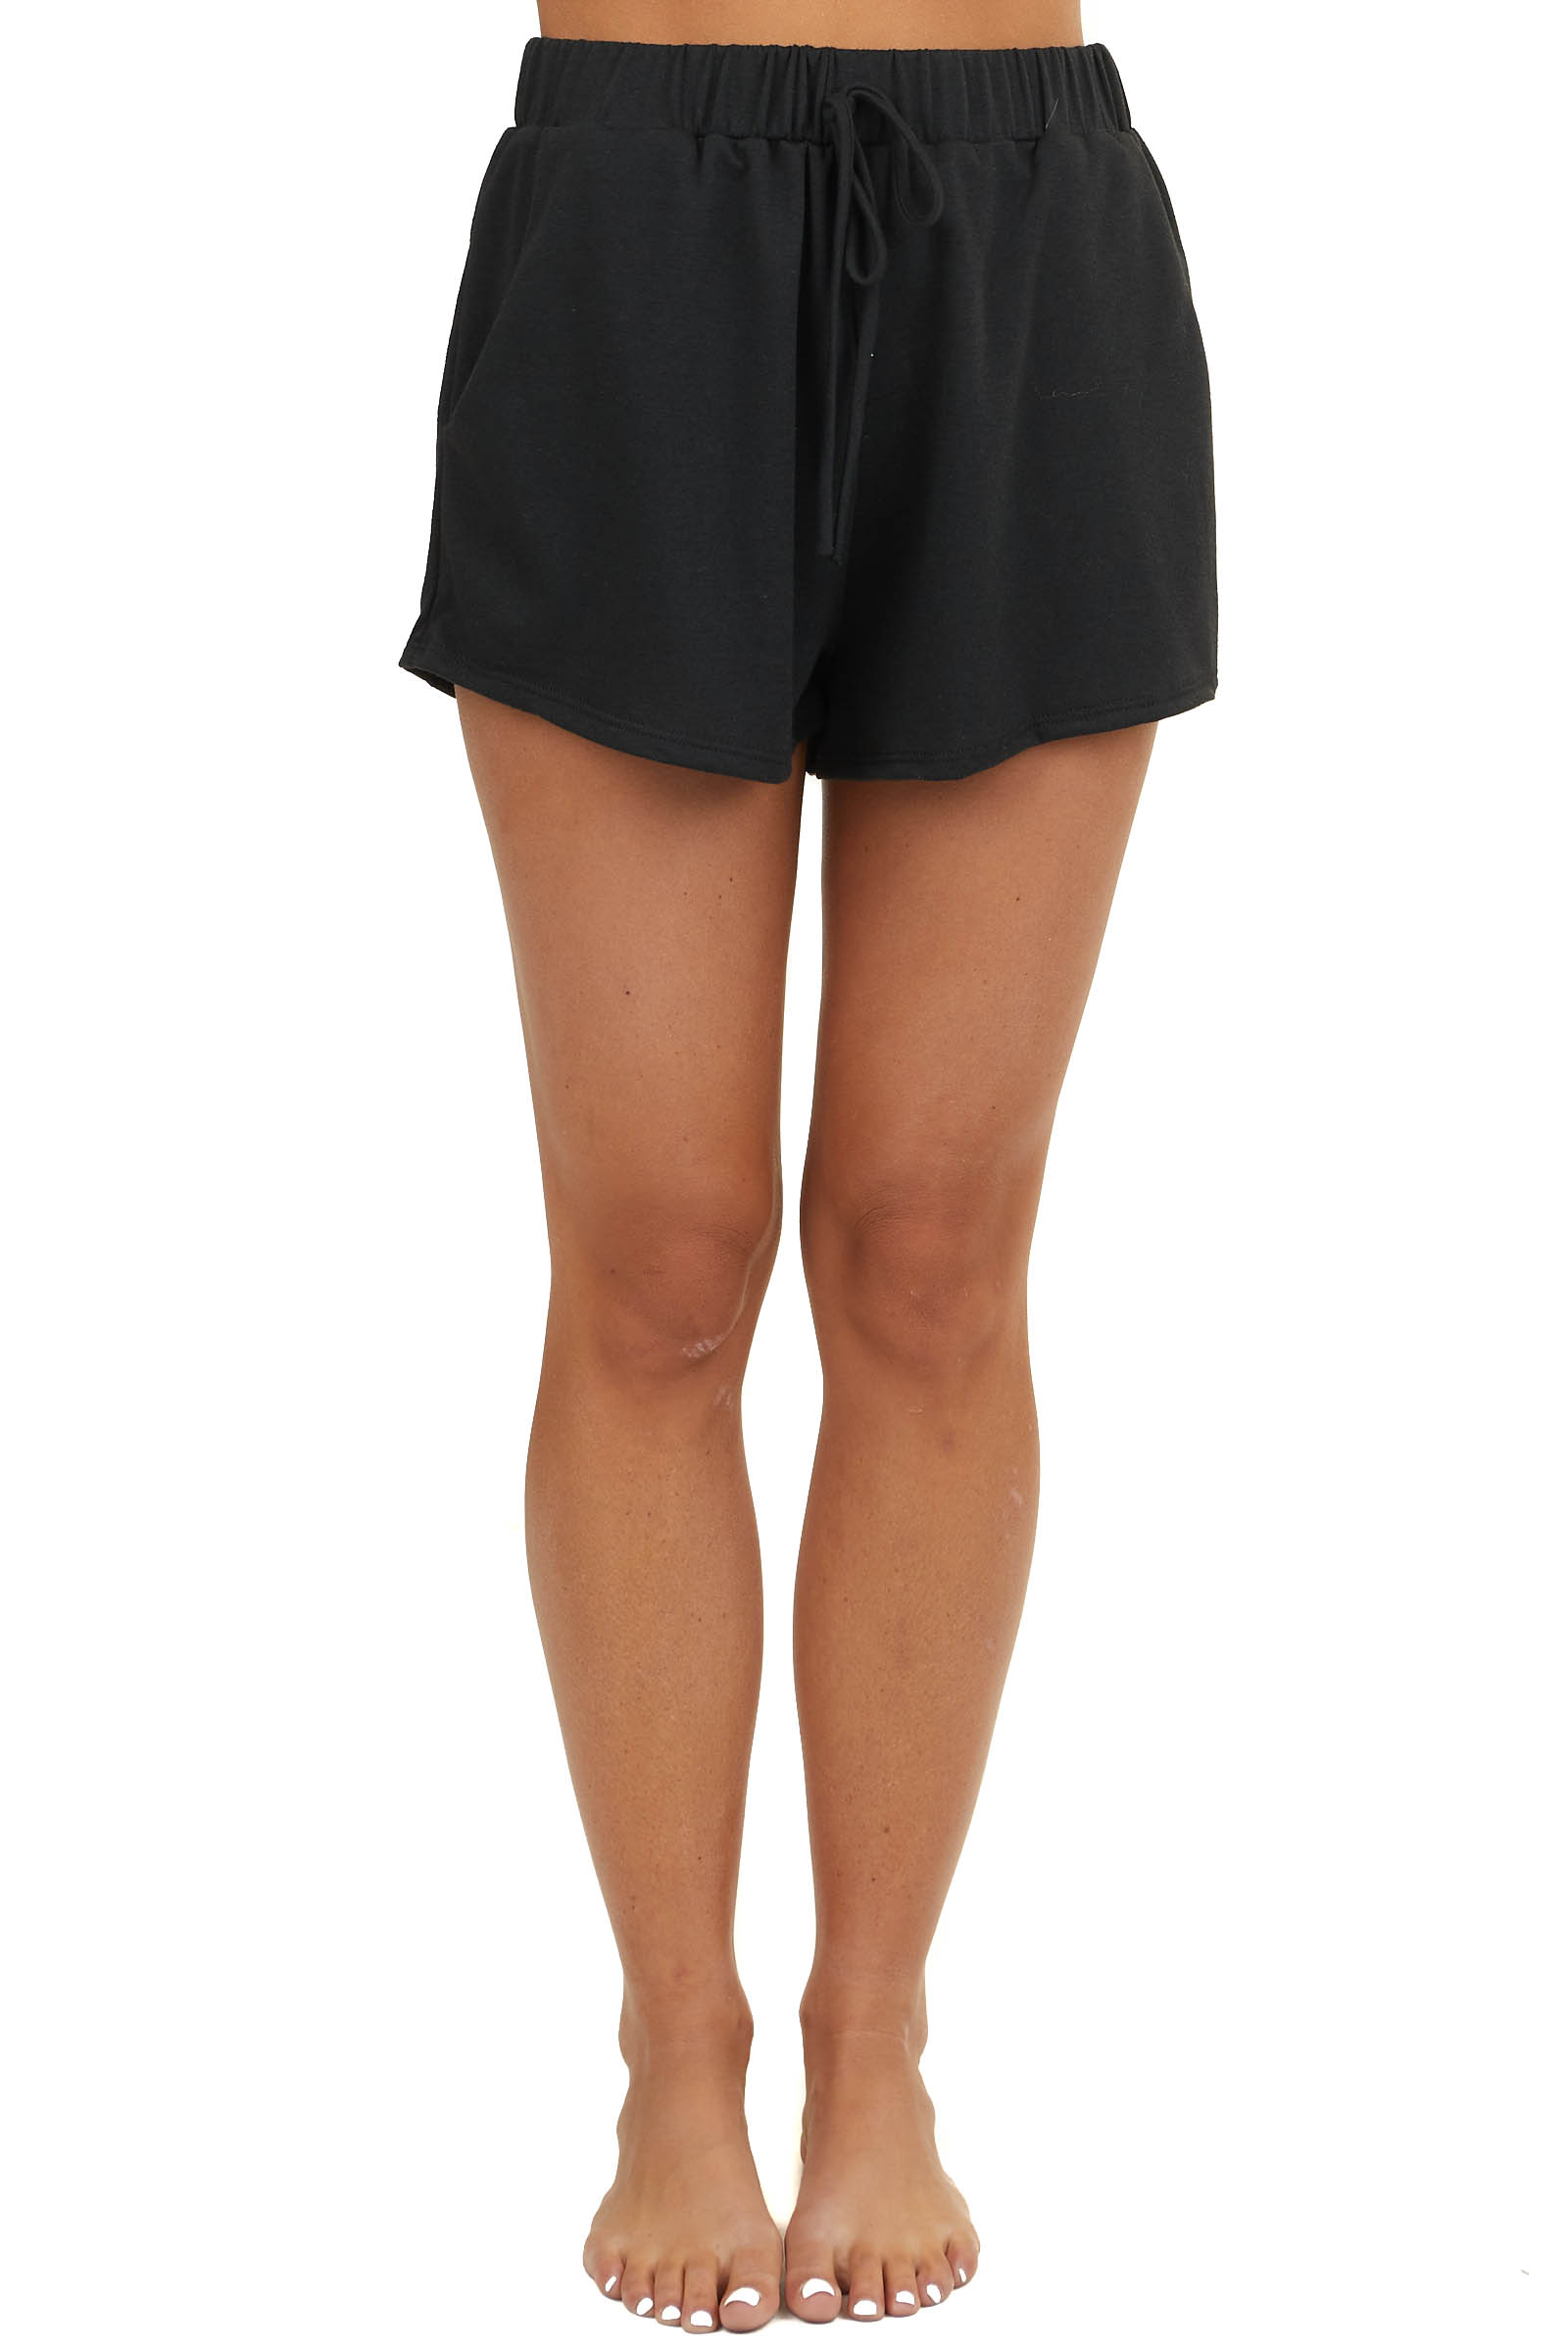 Black Super Soft Loungewear Drawstring Shorts with Pockets